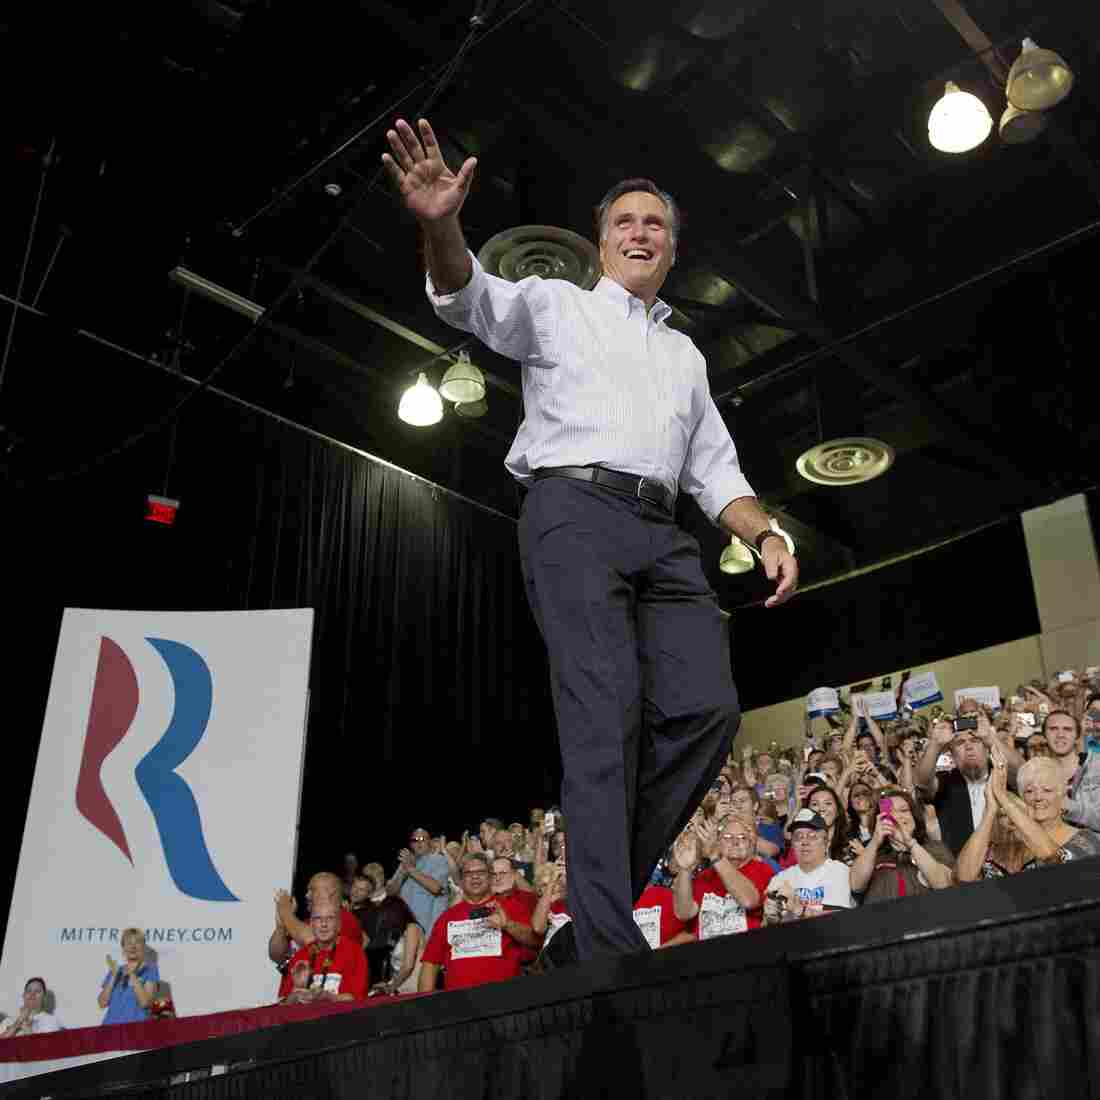 Romney's 2011 Tax Return Gives More Fodder To Critics Who Already Had Surplus